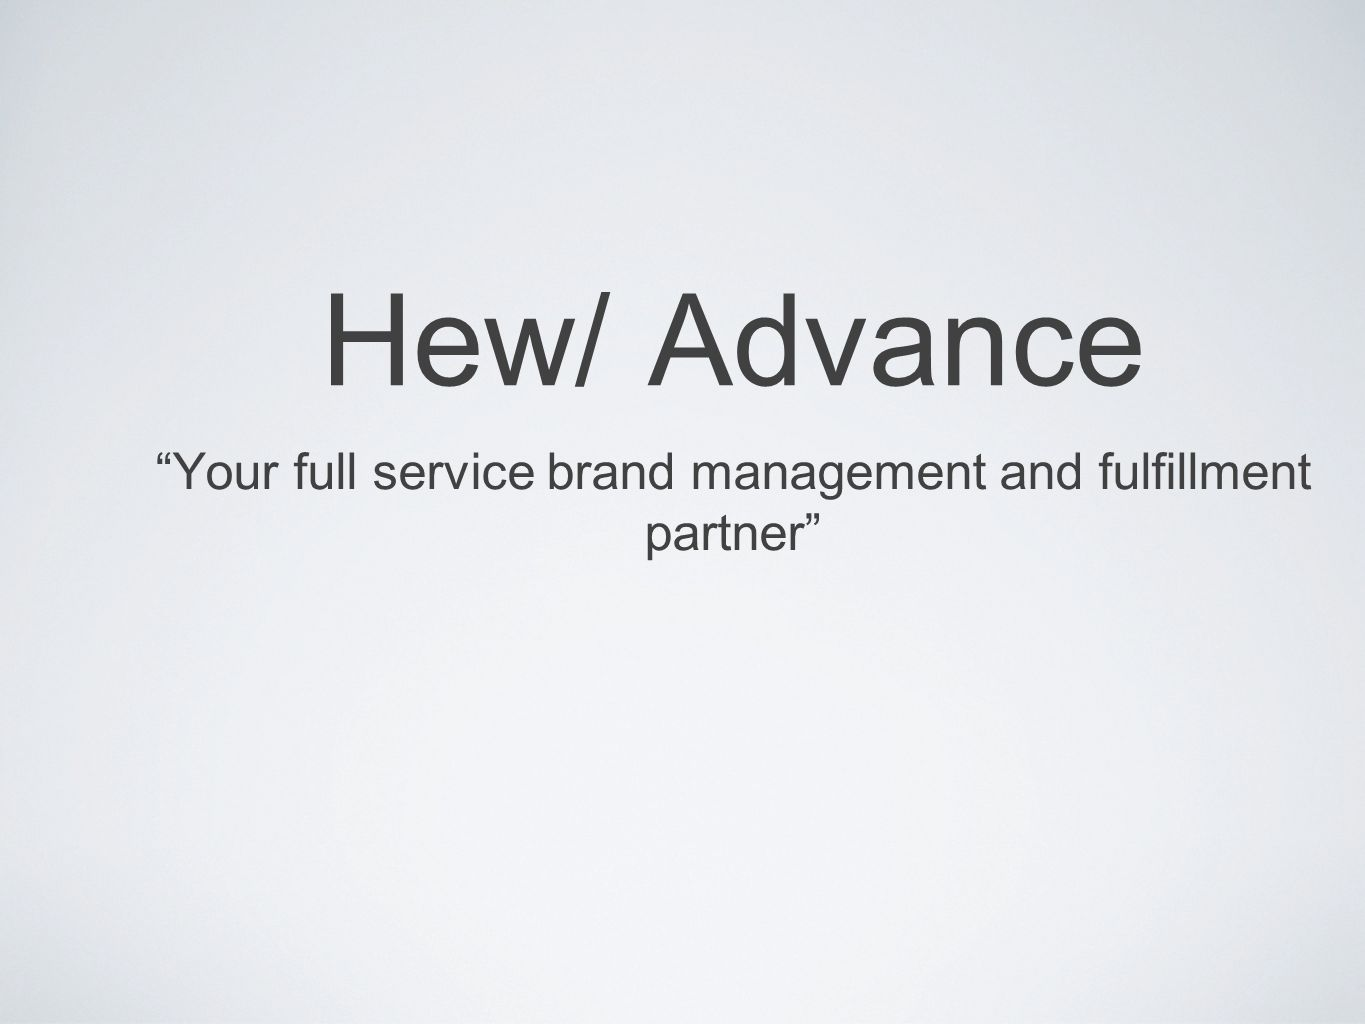 Your full service brand management and fulfillment partner